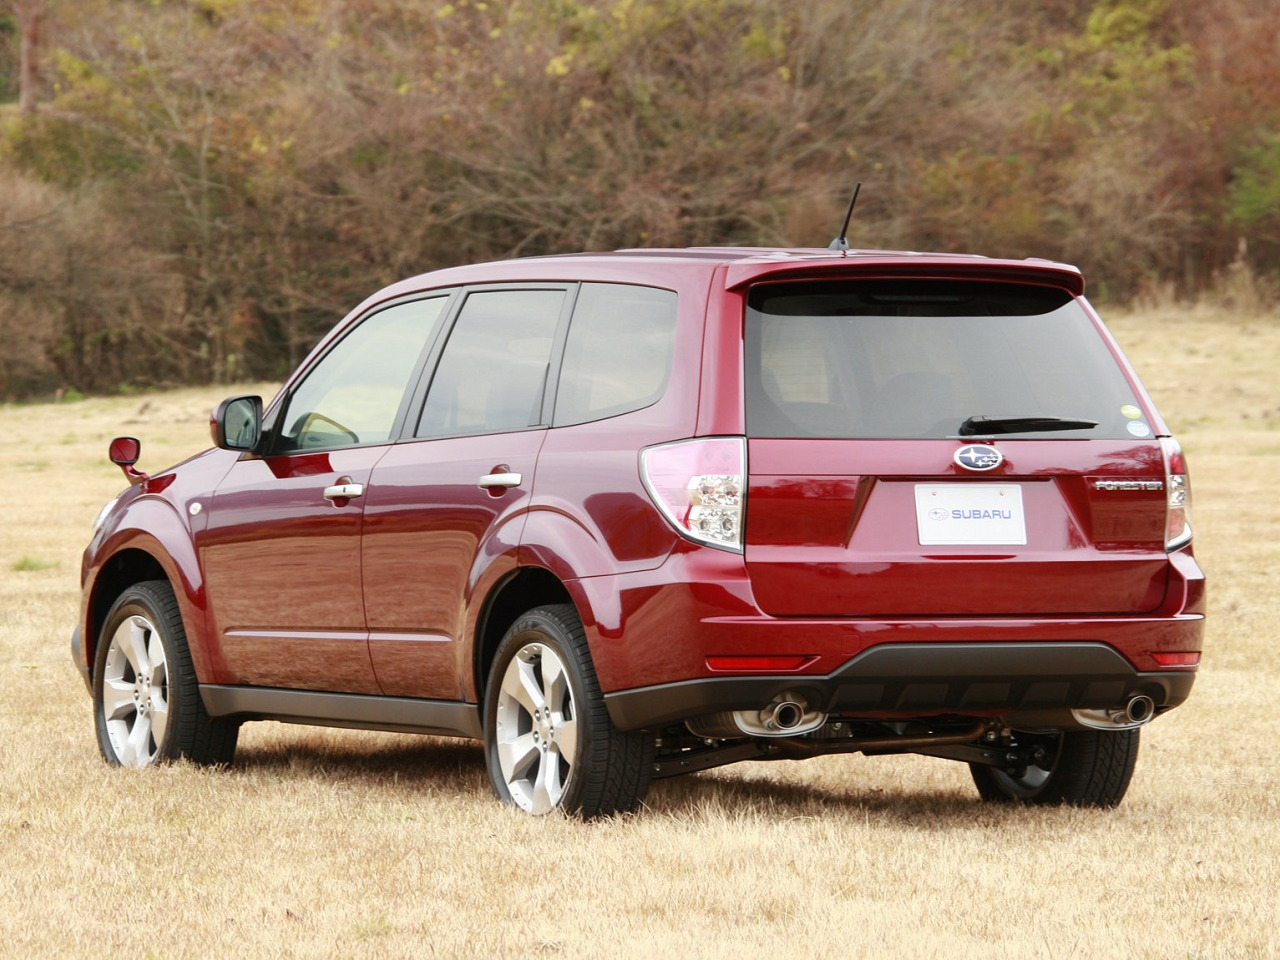 2008 subaru forester wallpapers pictures specifications interiors and exteriors images. Black Bedroom Furniture Sets. Home Design Ideas